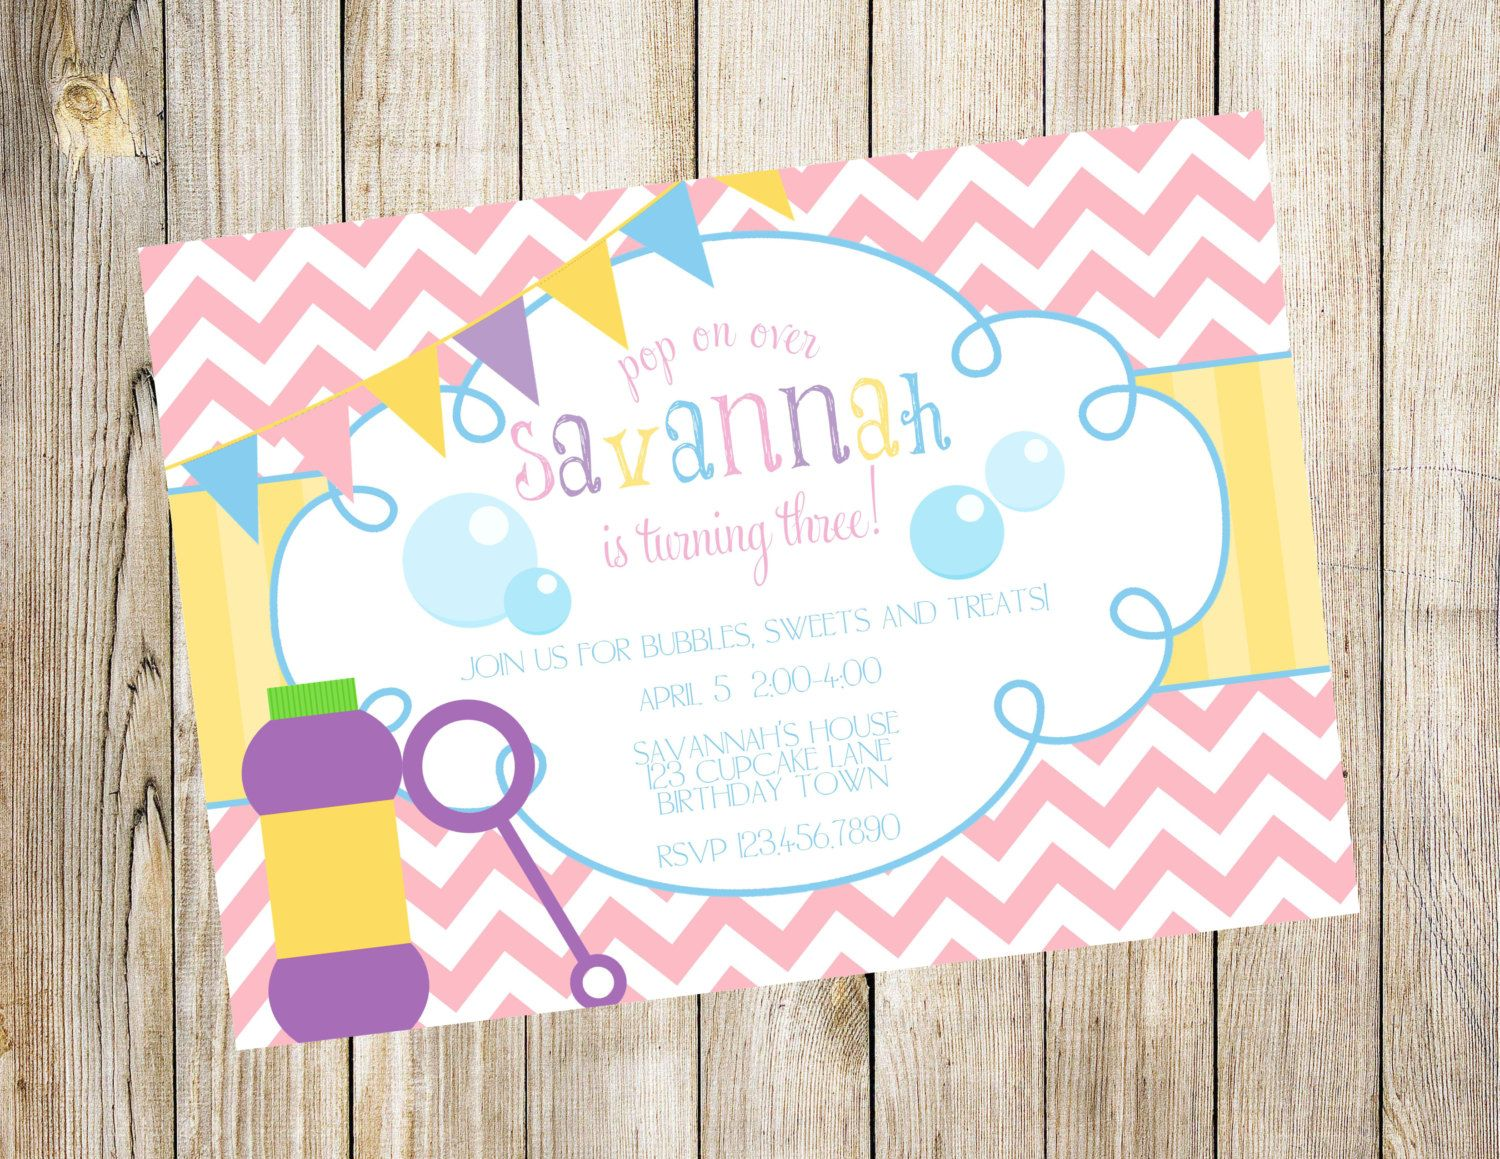 Bubbles Birthday Party Invitation by EmmyJosParties on Etsy, $12.00 ...